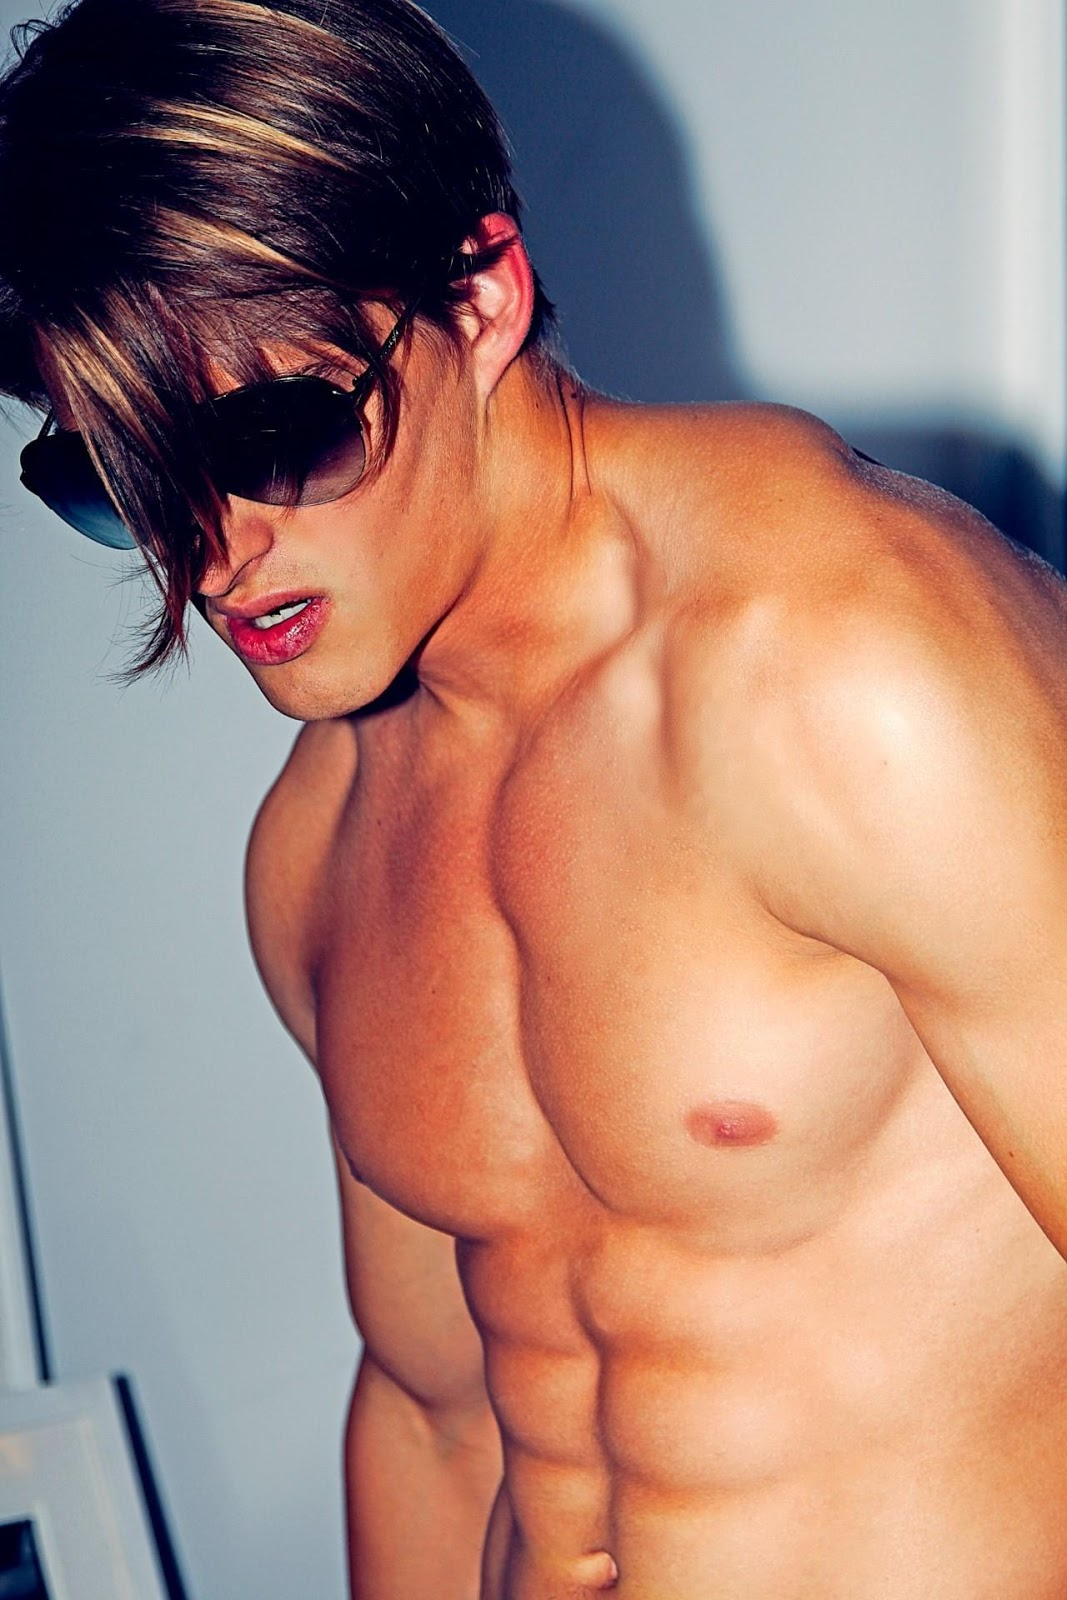 fit-nice-hair-male-model-shirtless-body-pecs-sixpack-abs-skinny-sexy-jawline-dude-pretty-lips